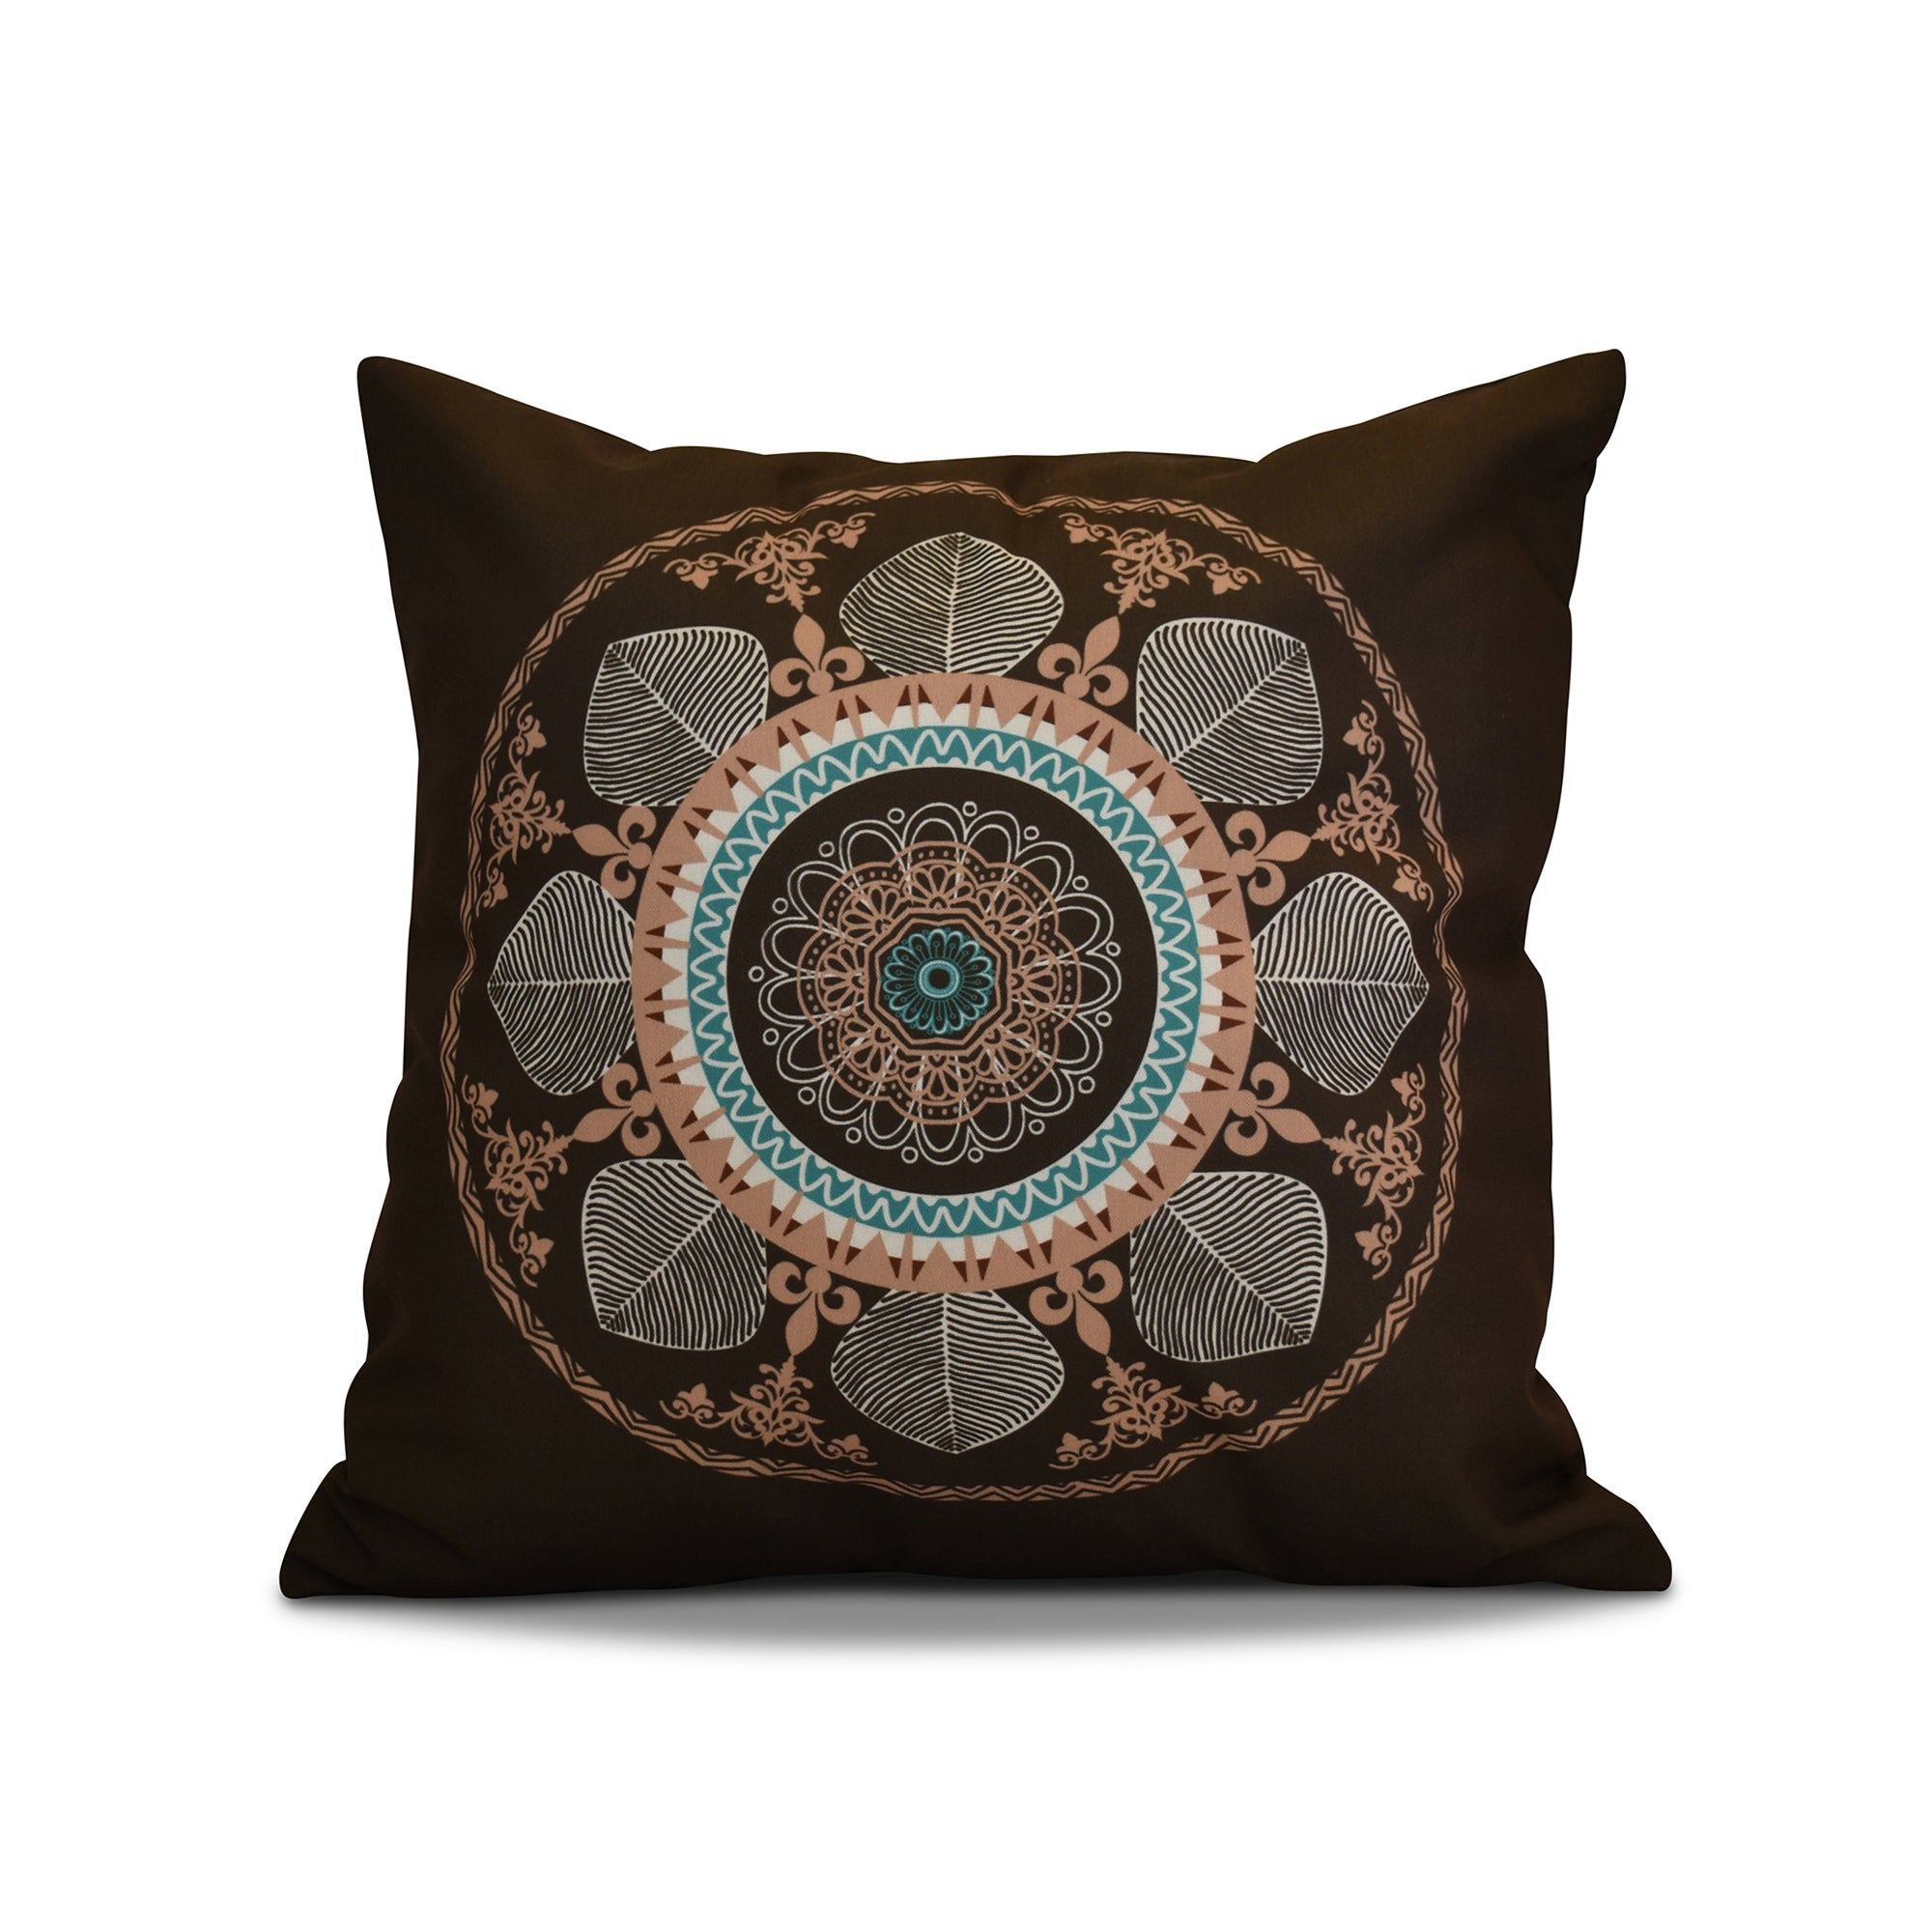 26 x 26-inch Stained Glass Geometric Print Pillow (Grey)